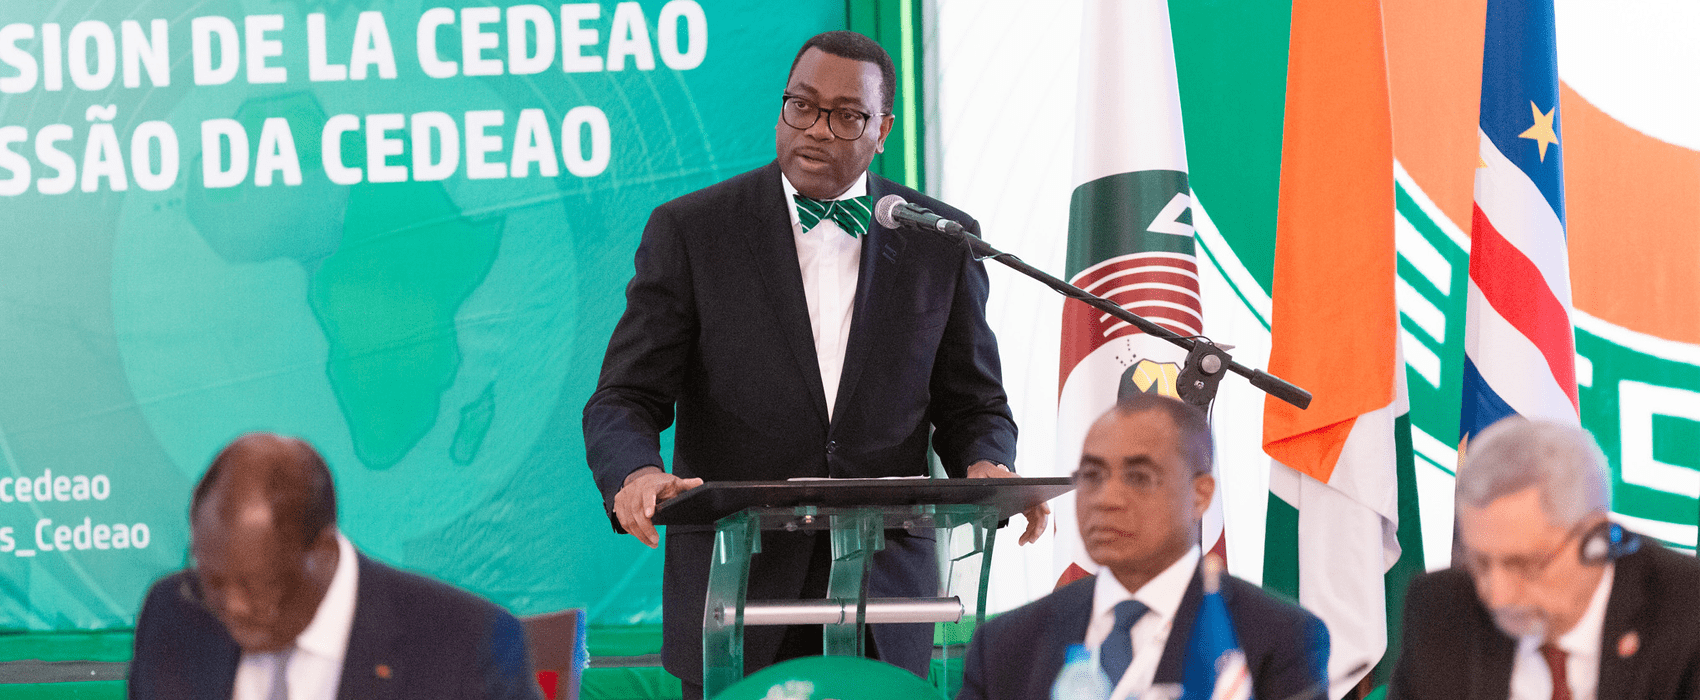 "In recognition of the sterling performance of Dr. Akinwumi Adesina during his first term of office as President of the African Development Bank, the Authority endorses his candidacy for a second term as the President of the bank,"" ECOWAS said in a communique issued after the meeting"